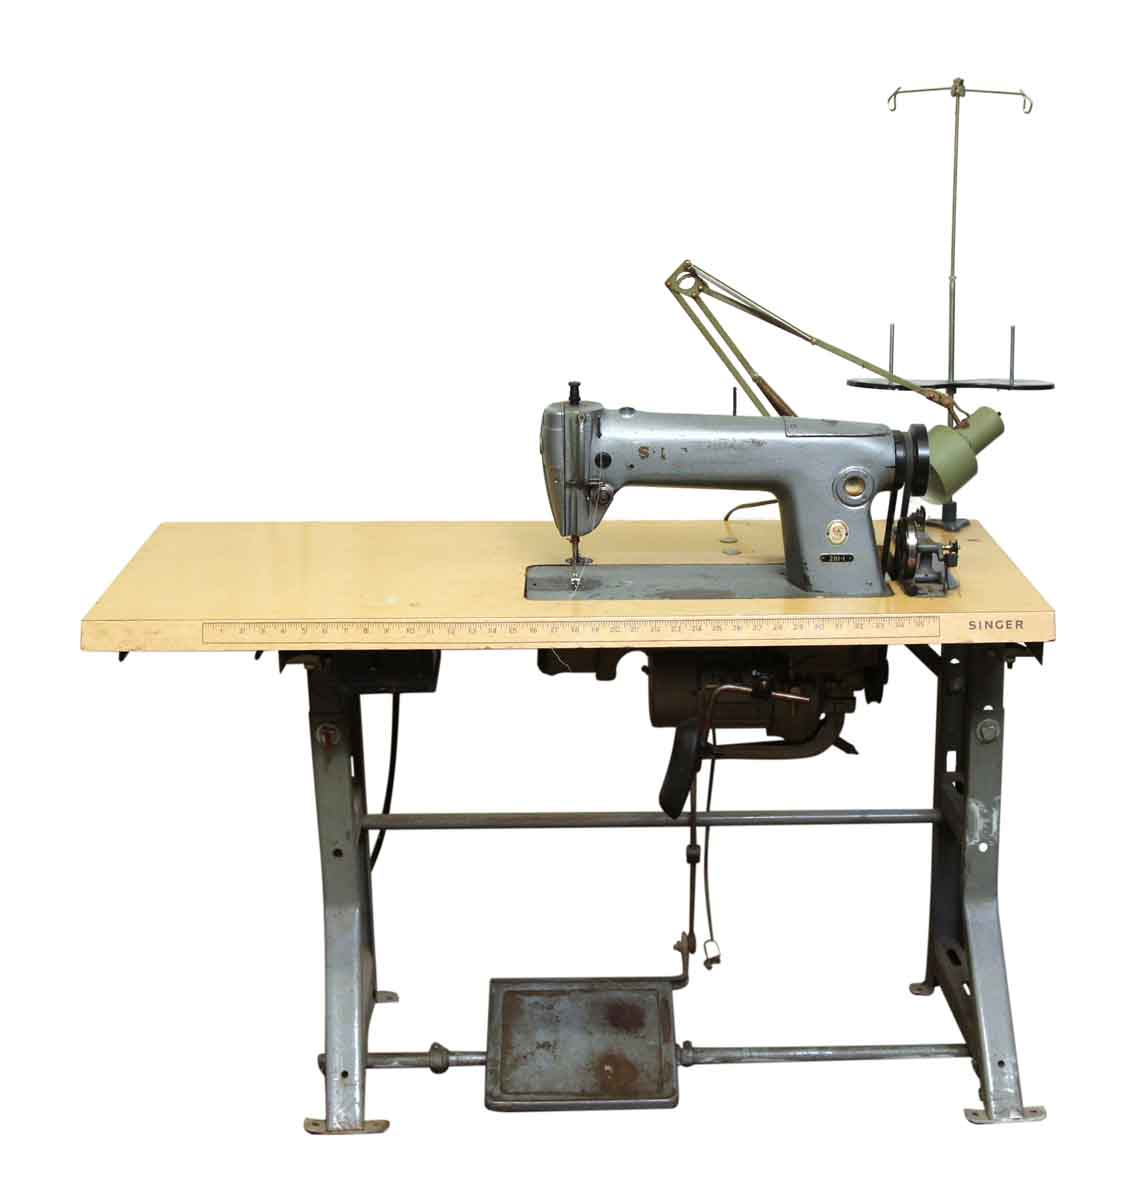 Singer Commercial Sewing Machine Table